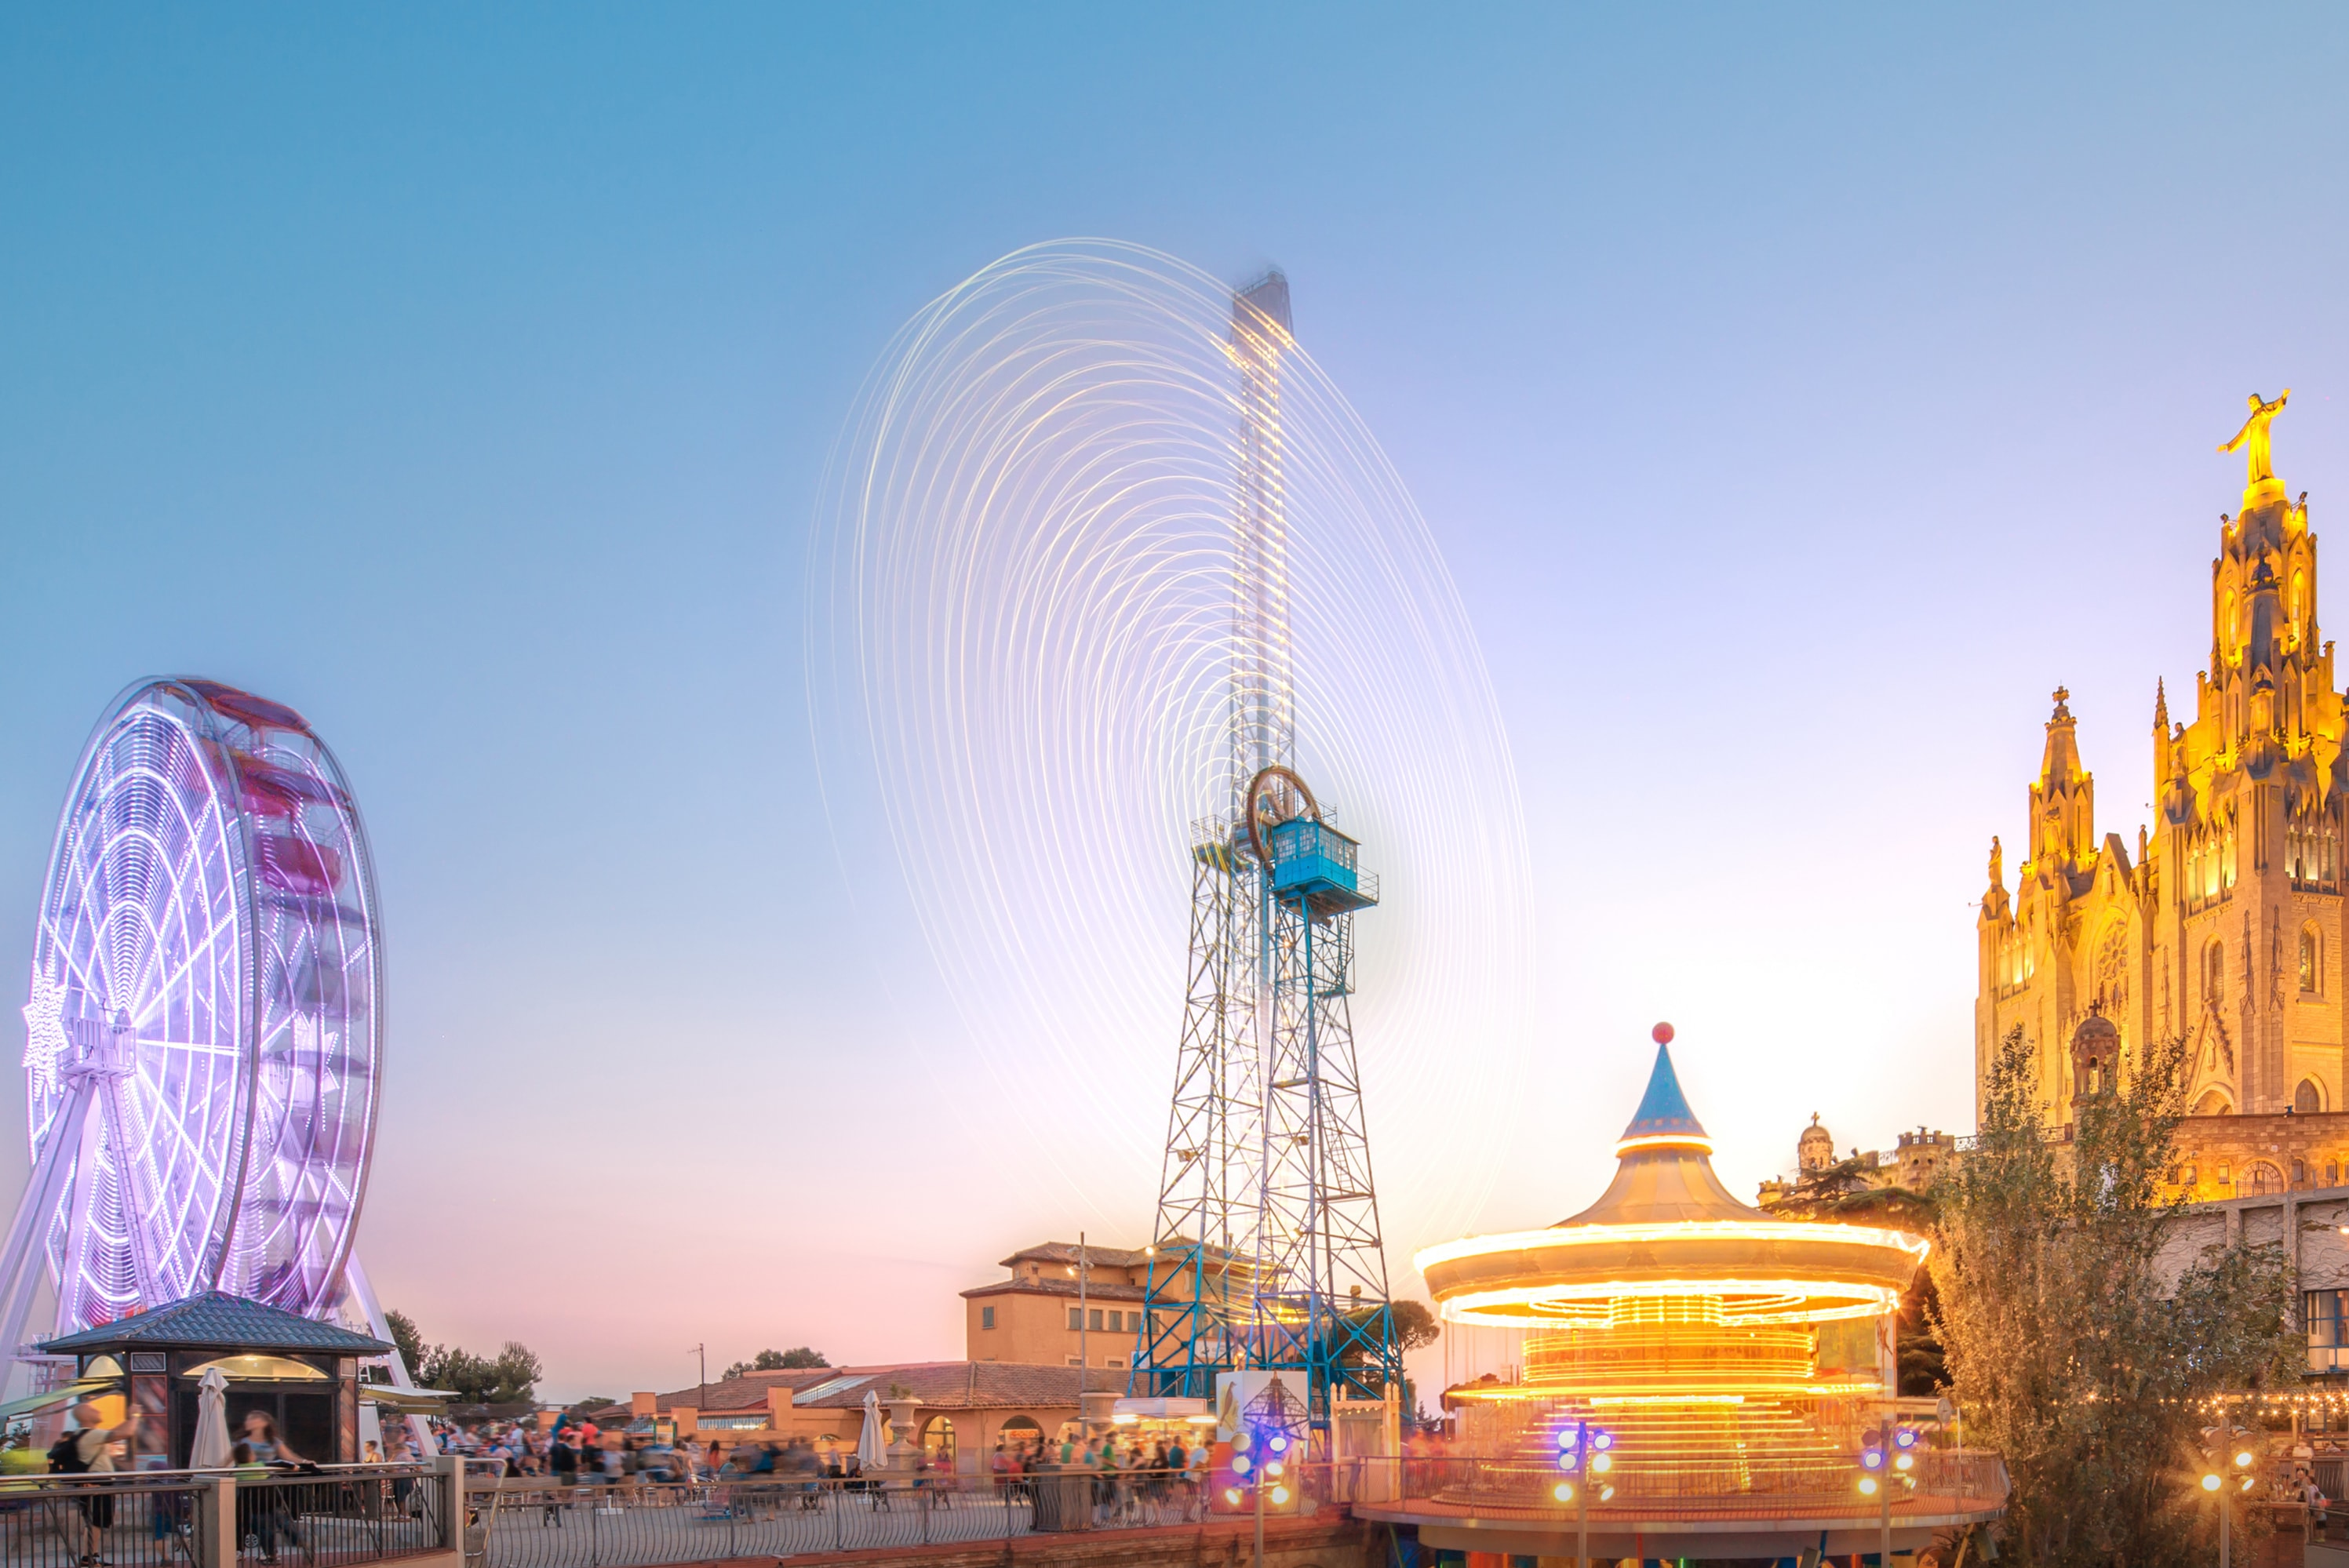 Tibiado Amusement Park - Things to do in Barcelona